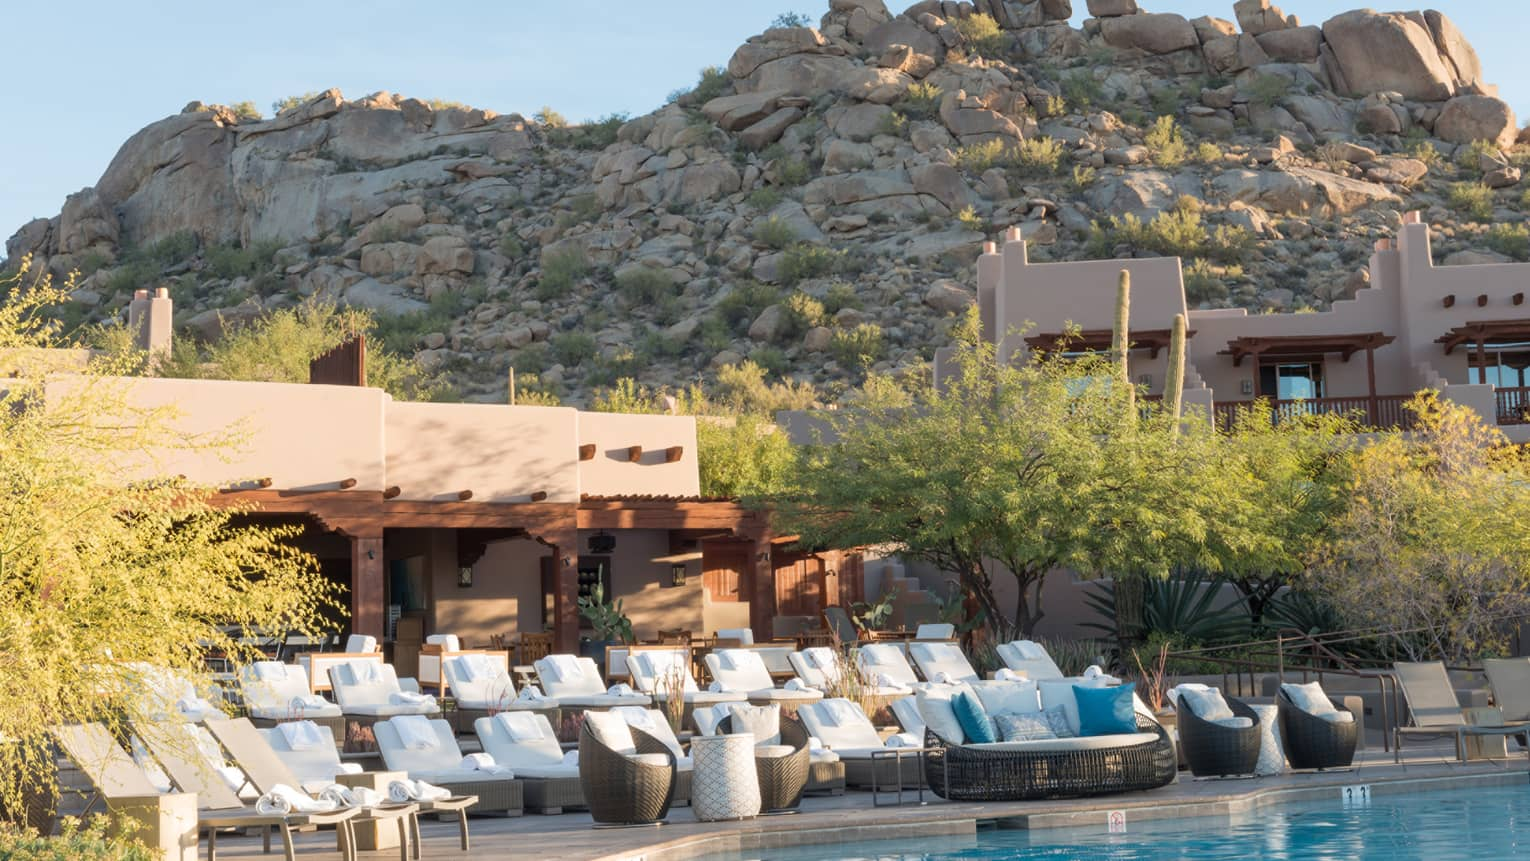 Rows of white lounge chairs on bi-level patio beside outdoor swimming pool under large desert rock face